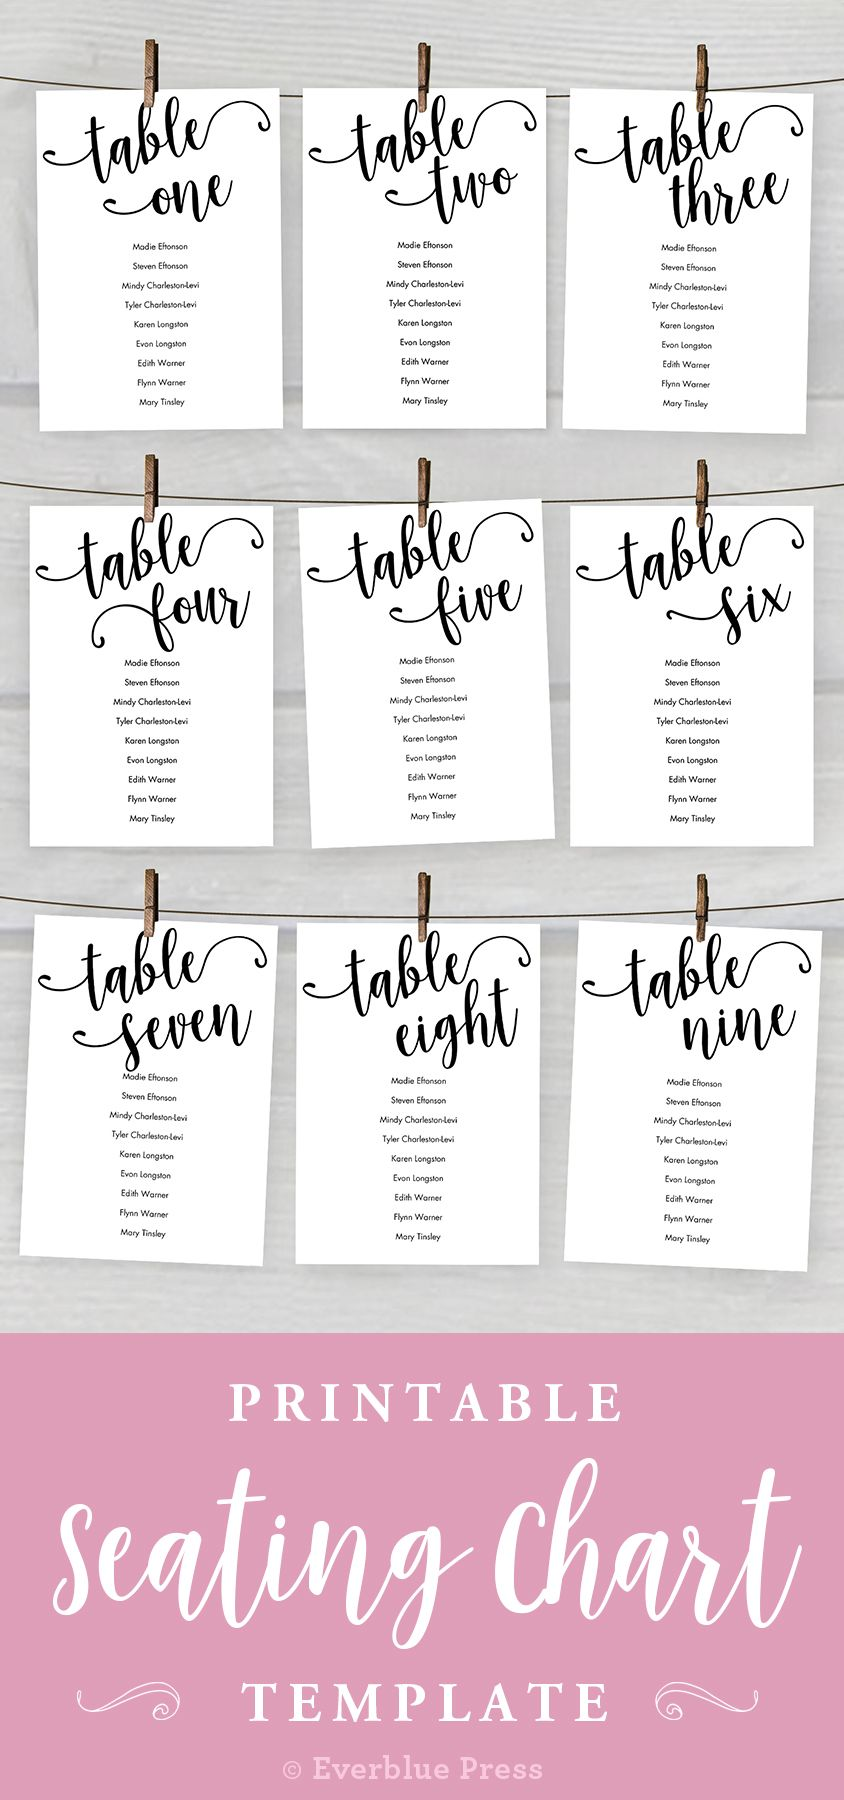 Our Printable Seating Chart Template Allows You To Add Your Guest